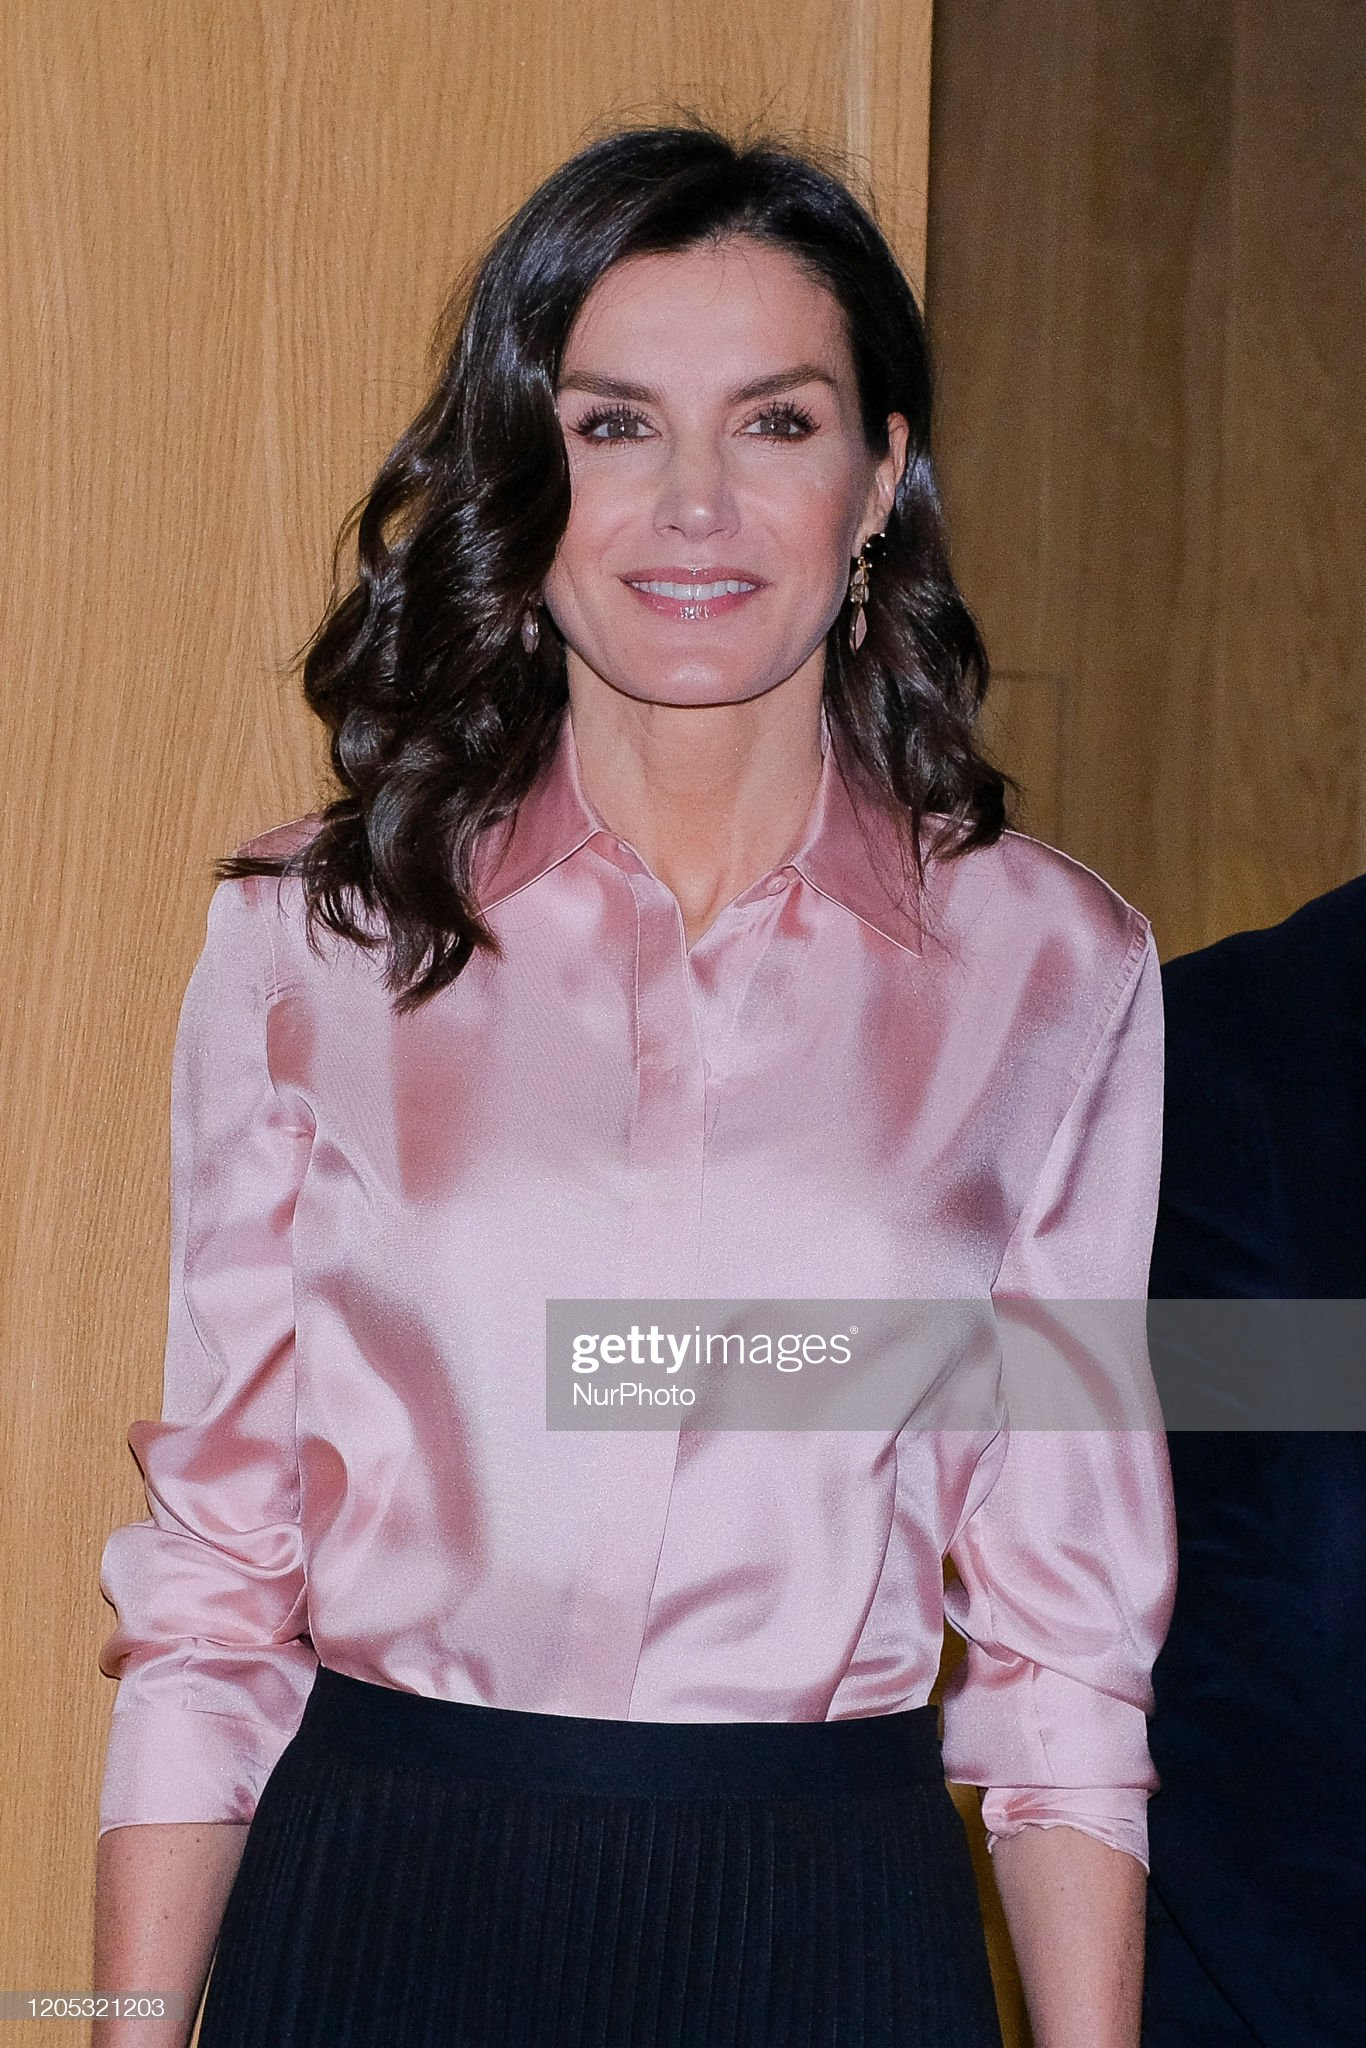 https://media.gettyimages.com/photos/queen-letizia-of-spain-attends-the-rare-diseases-world-day-event-at-picture-id1205321203?s=2048x2048